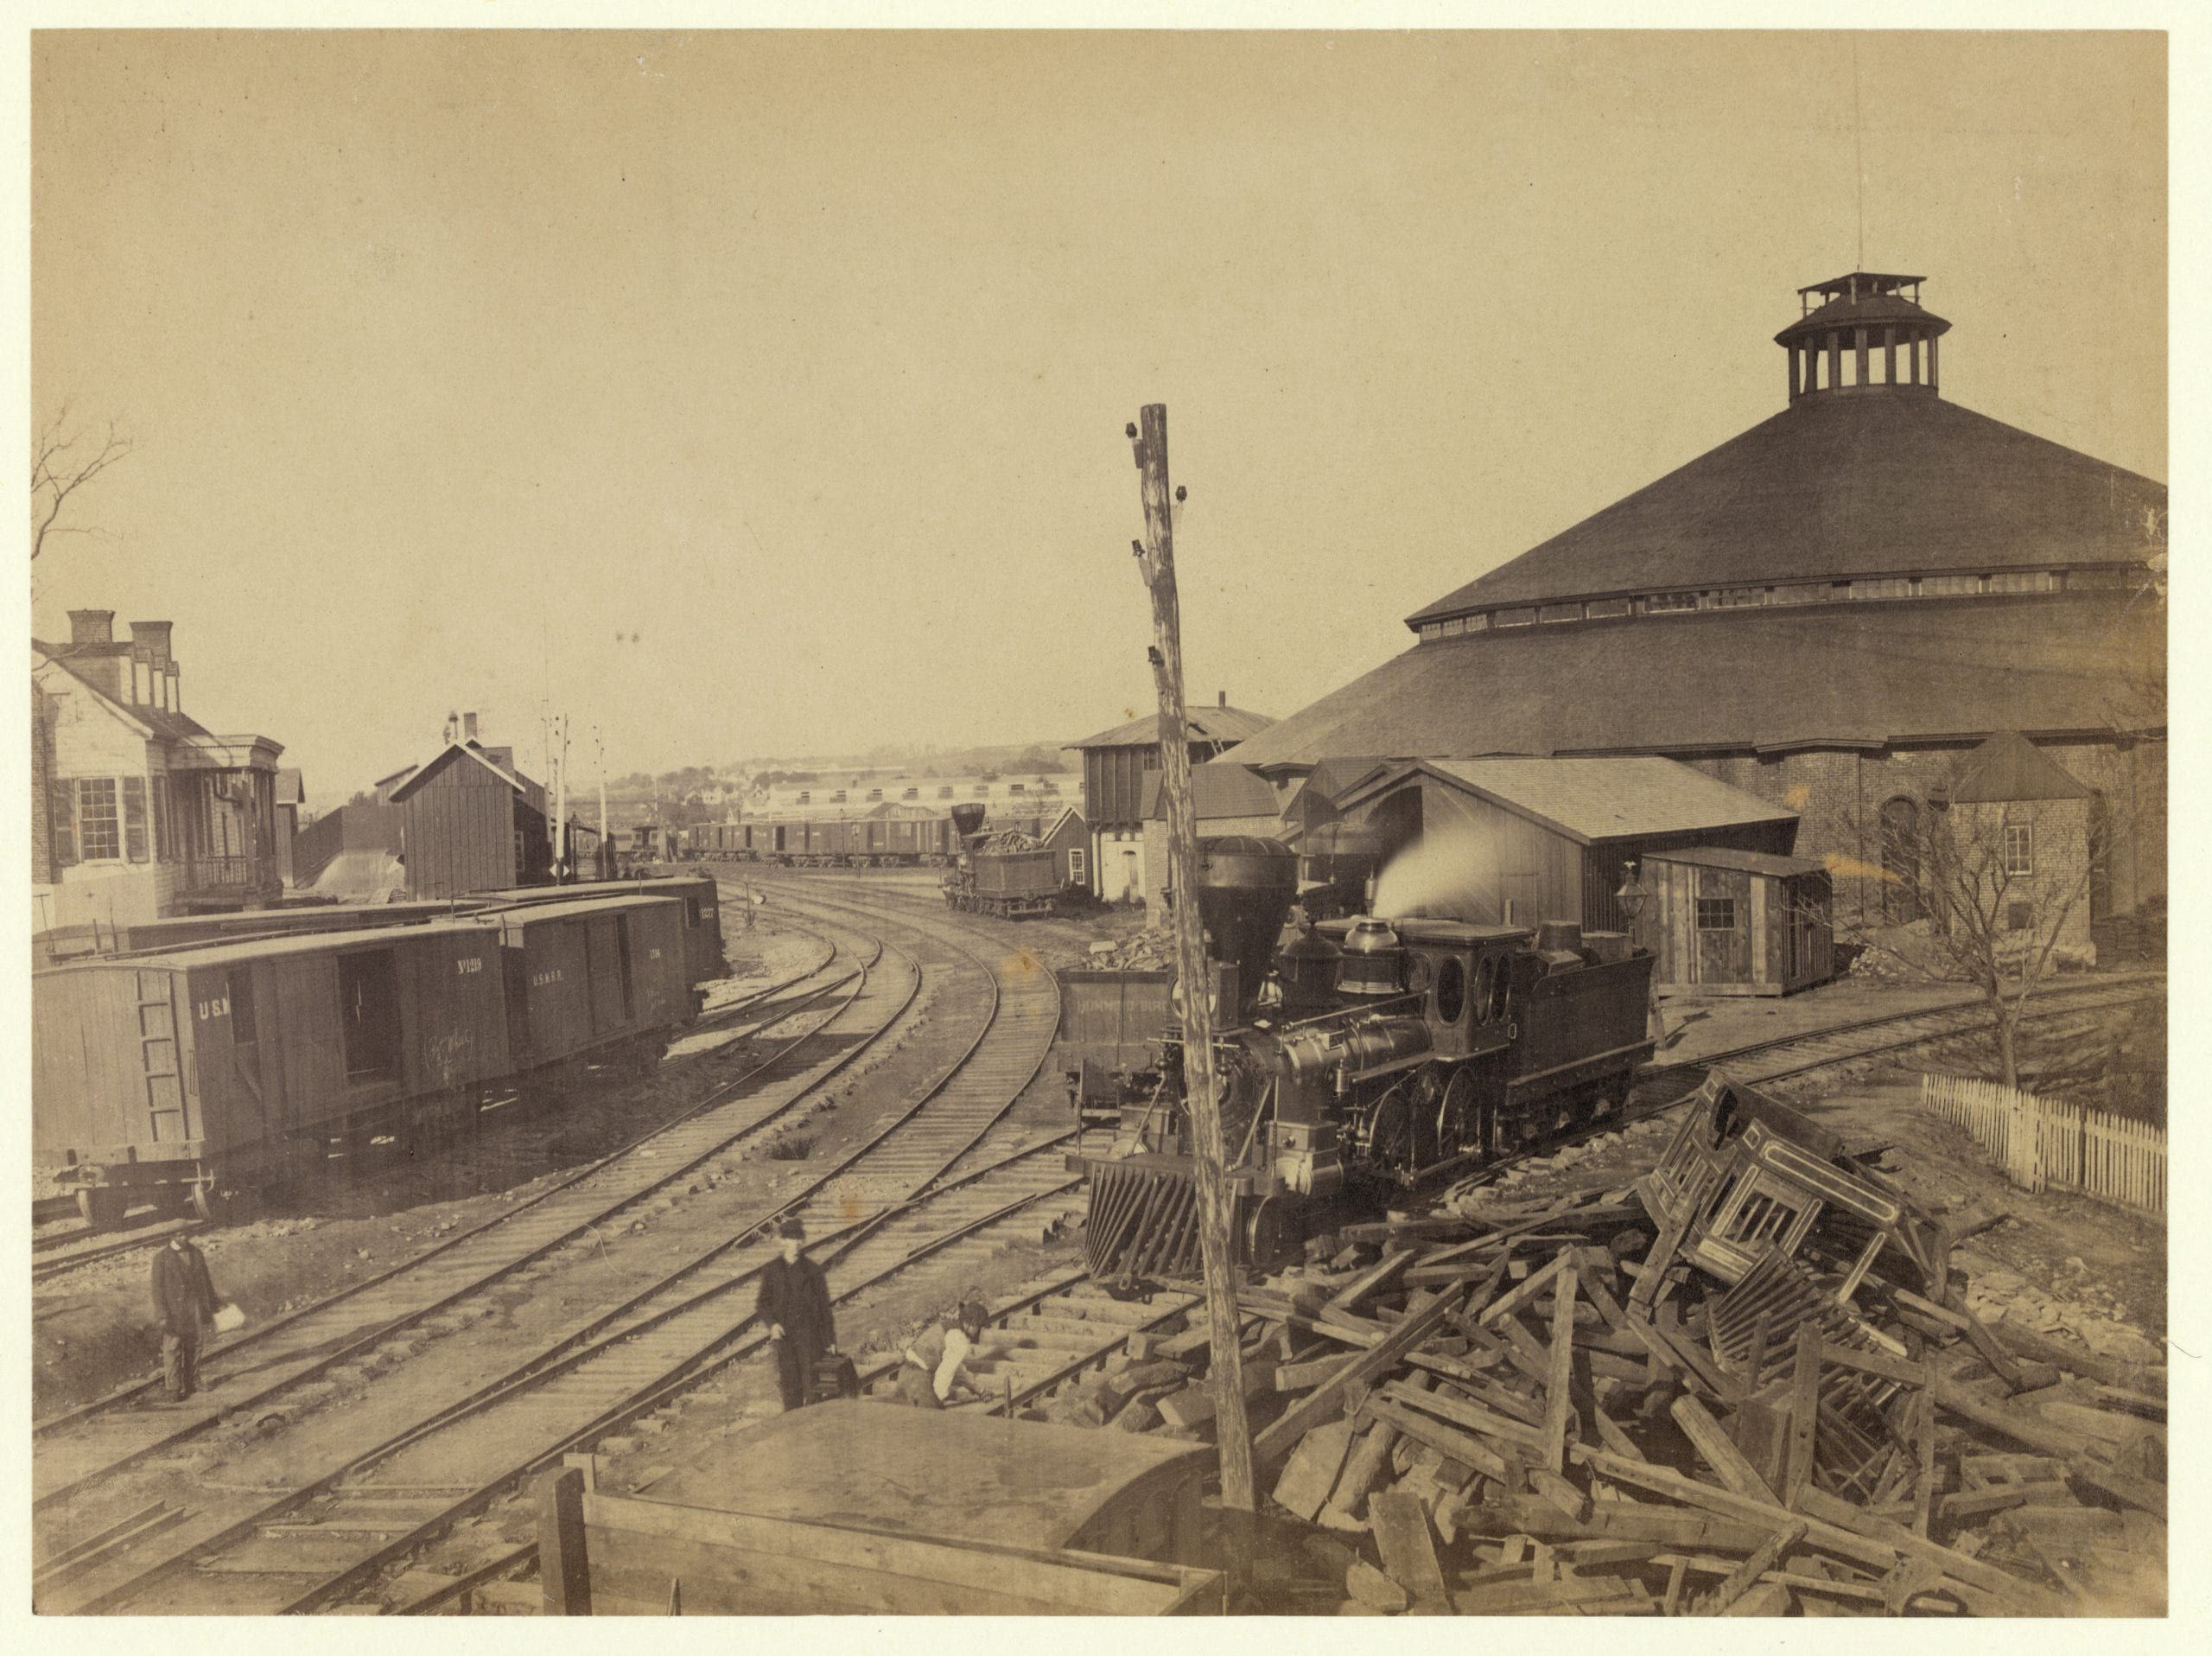 Photograph shows a locomotive moving away from the roundhouse at the Orange & Alexandria railroad yard in Alexandria, Virginia. Railroad signal lights on pole in foreground.